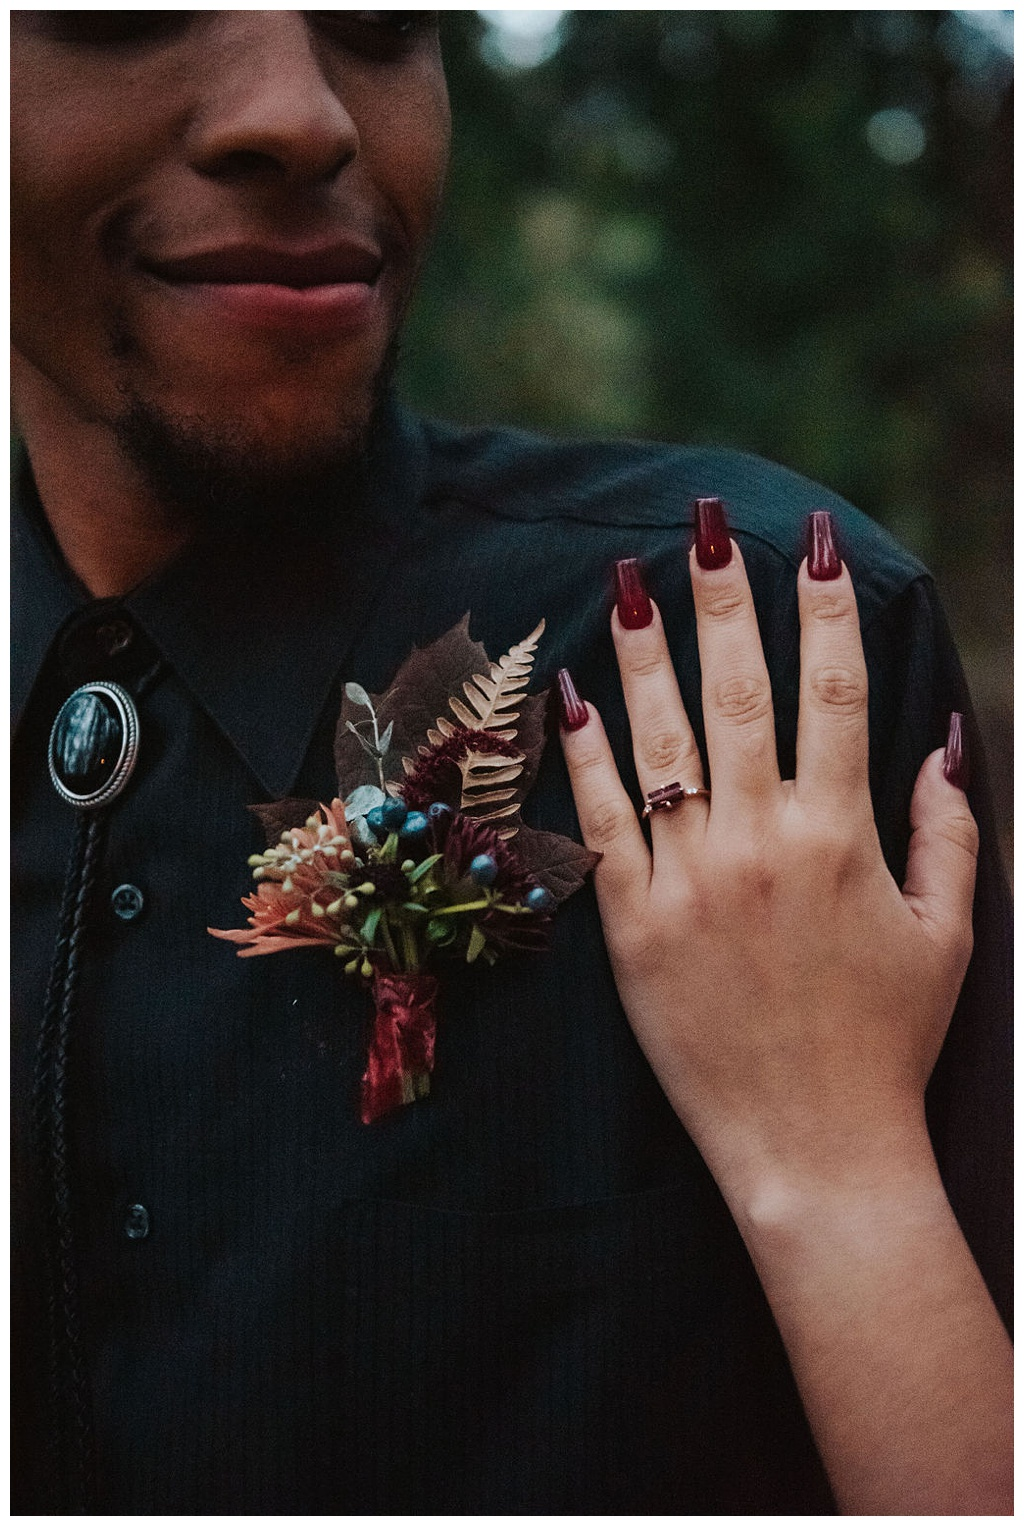 The groom with a boutonniere, and his wife's hand on his shoulder. The boutonniere is full of fall textures like berries, leaves, and dried fern